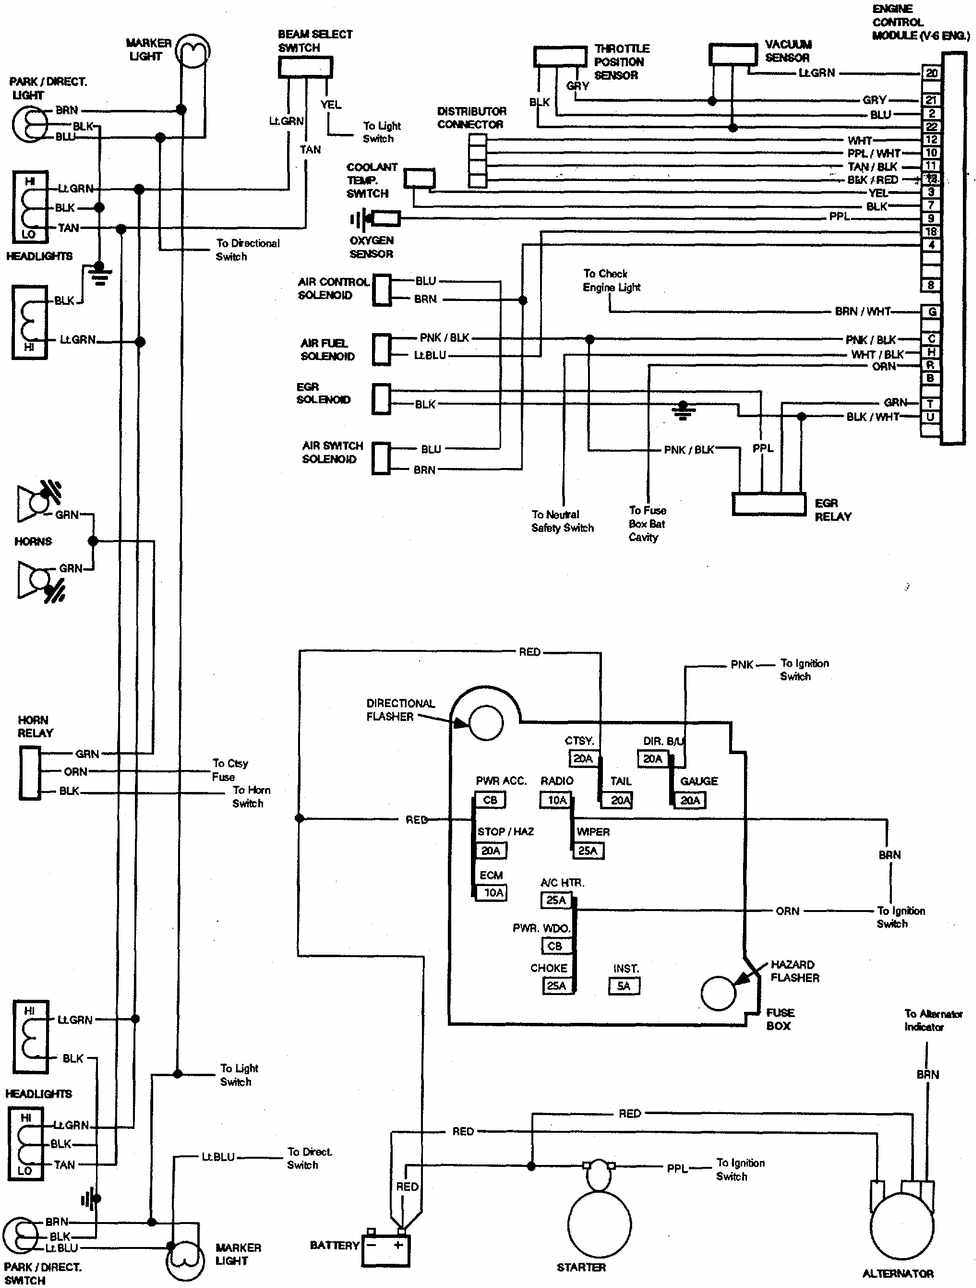 Tracing of wiring diagram of an alternator and reproducing it free 1981 corvette wiring diagram wiring diagrams schematics swarovskicordoba Gallery